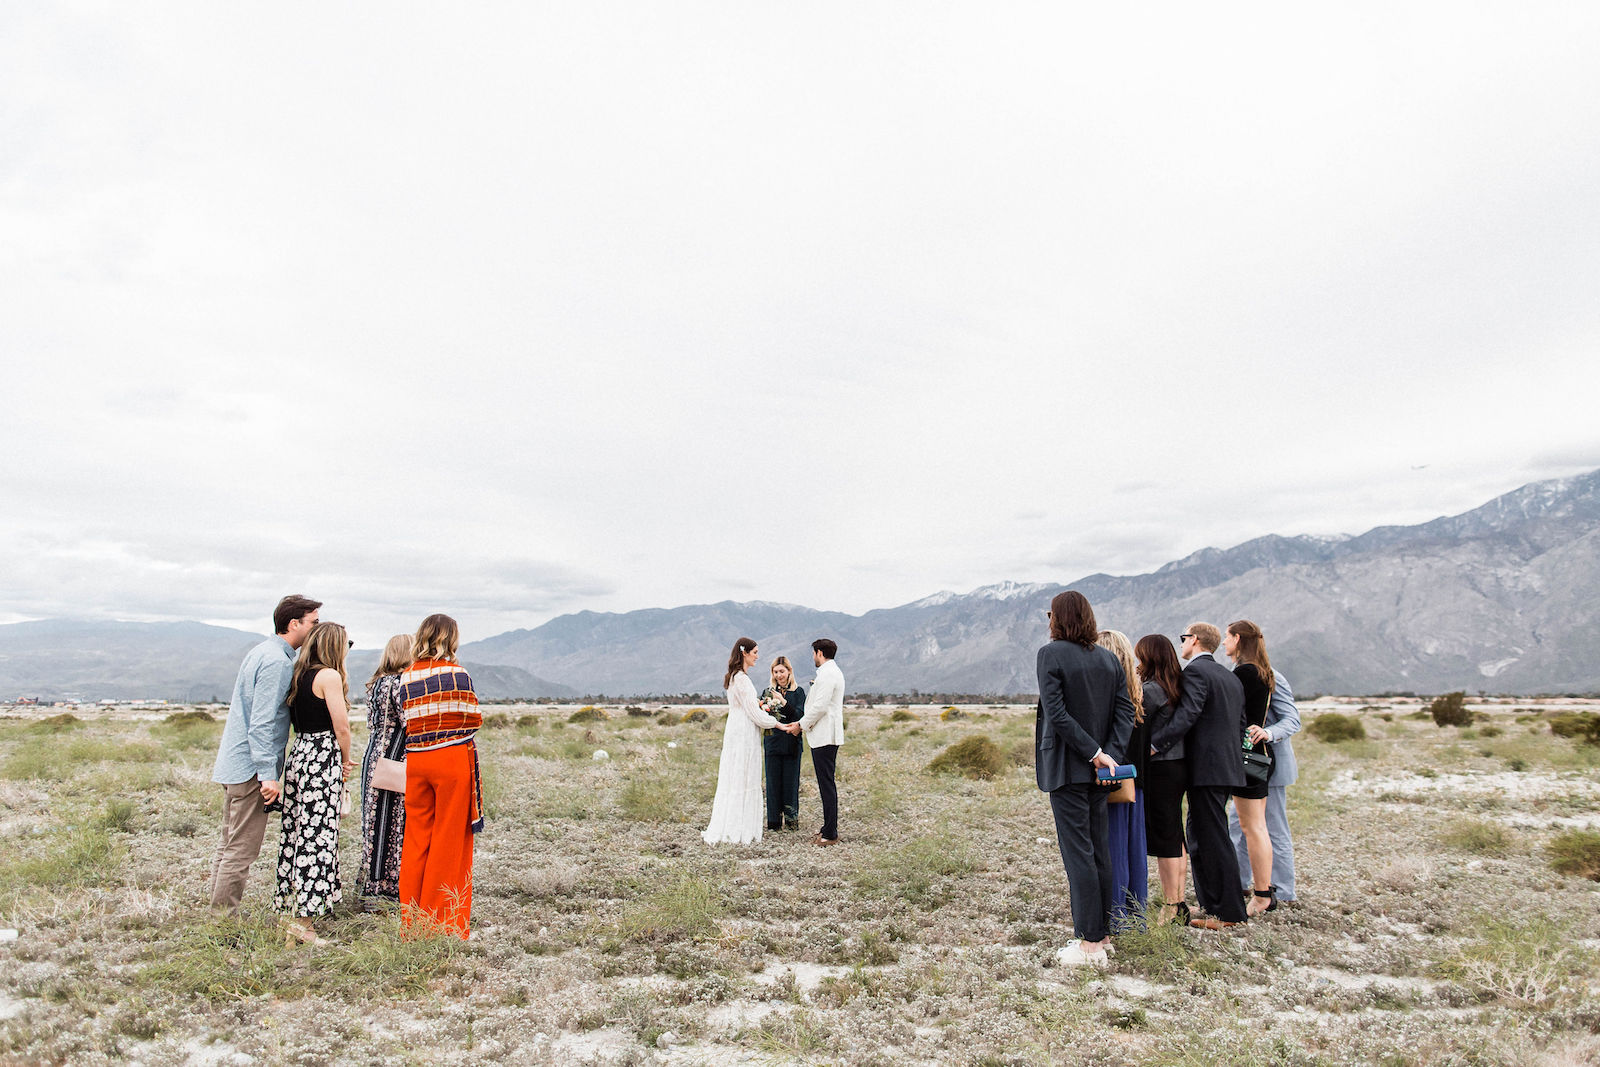 palm springs pop up wedding00001.jpg